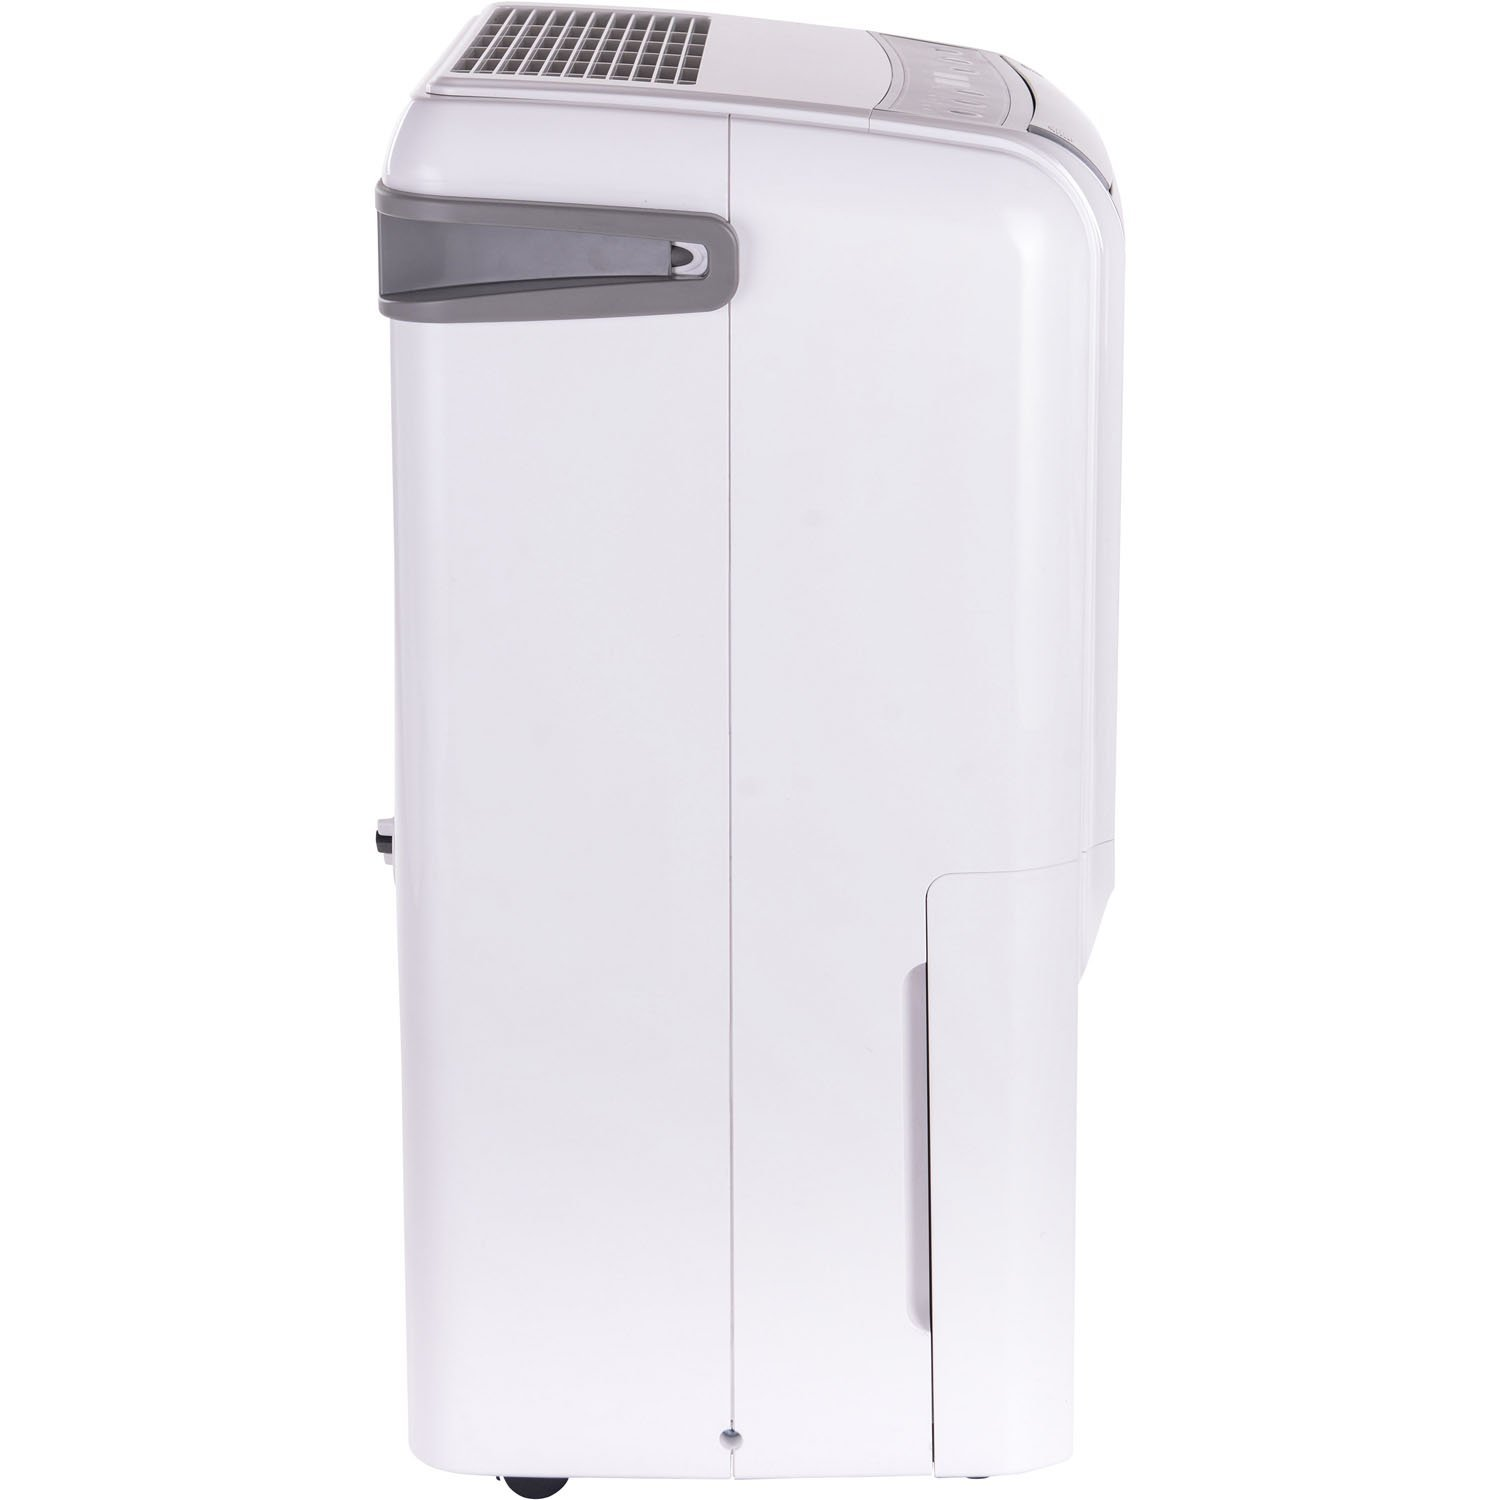 Honeywell dehumidifier Manual